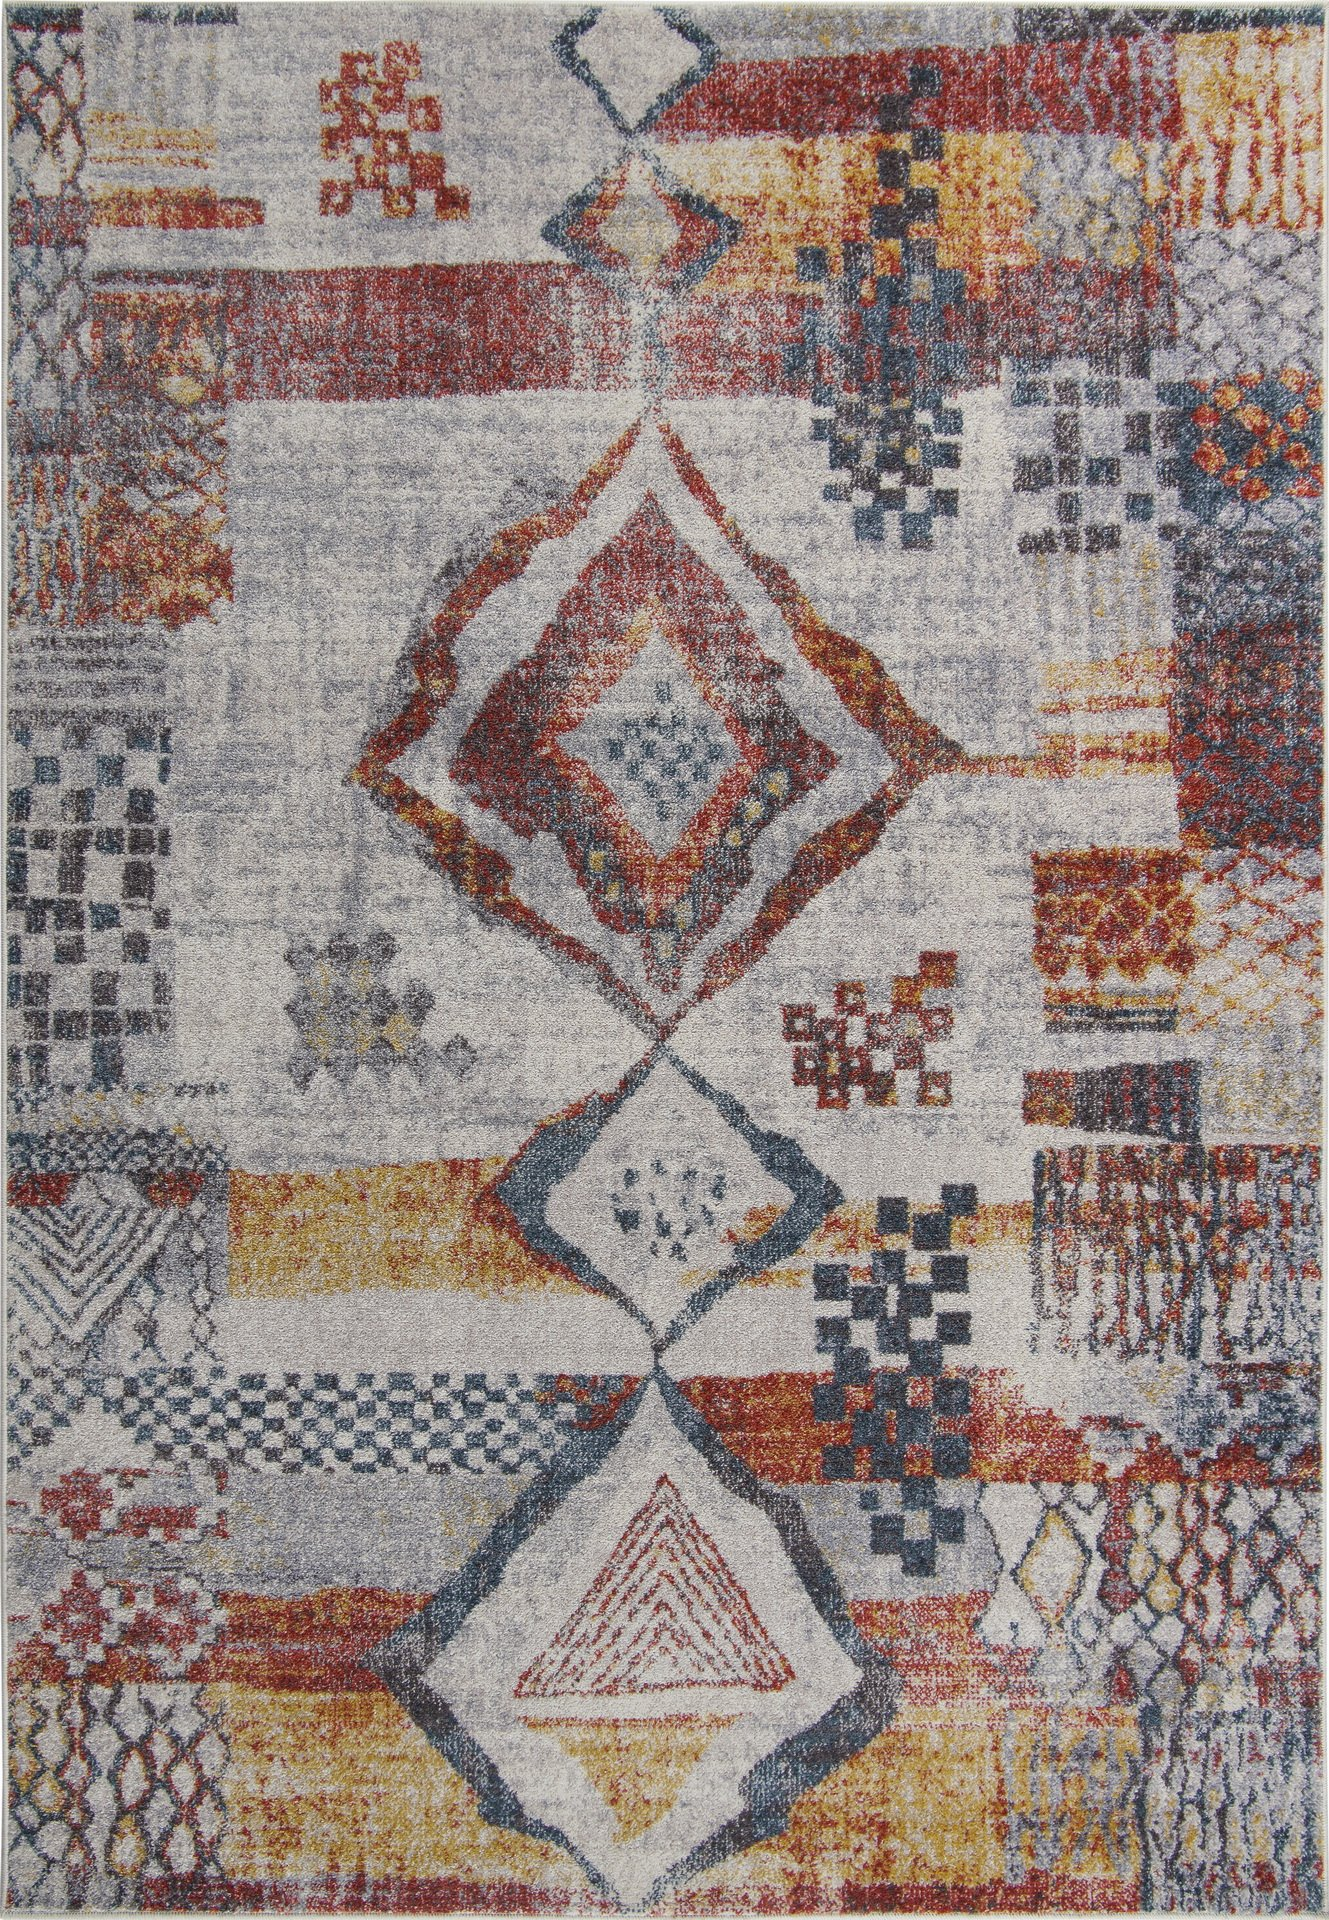 Image of: Morocco Southwestern Destressed Multicolor Area Rug 2×5 3×10 4×5 6×8 7×10 8×11 9×12 Feet Size Walmart Canada